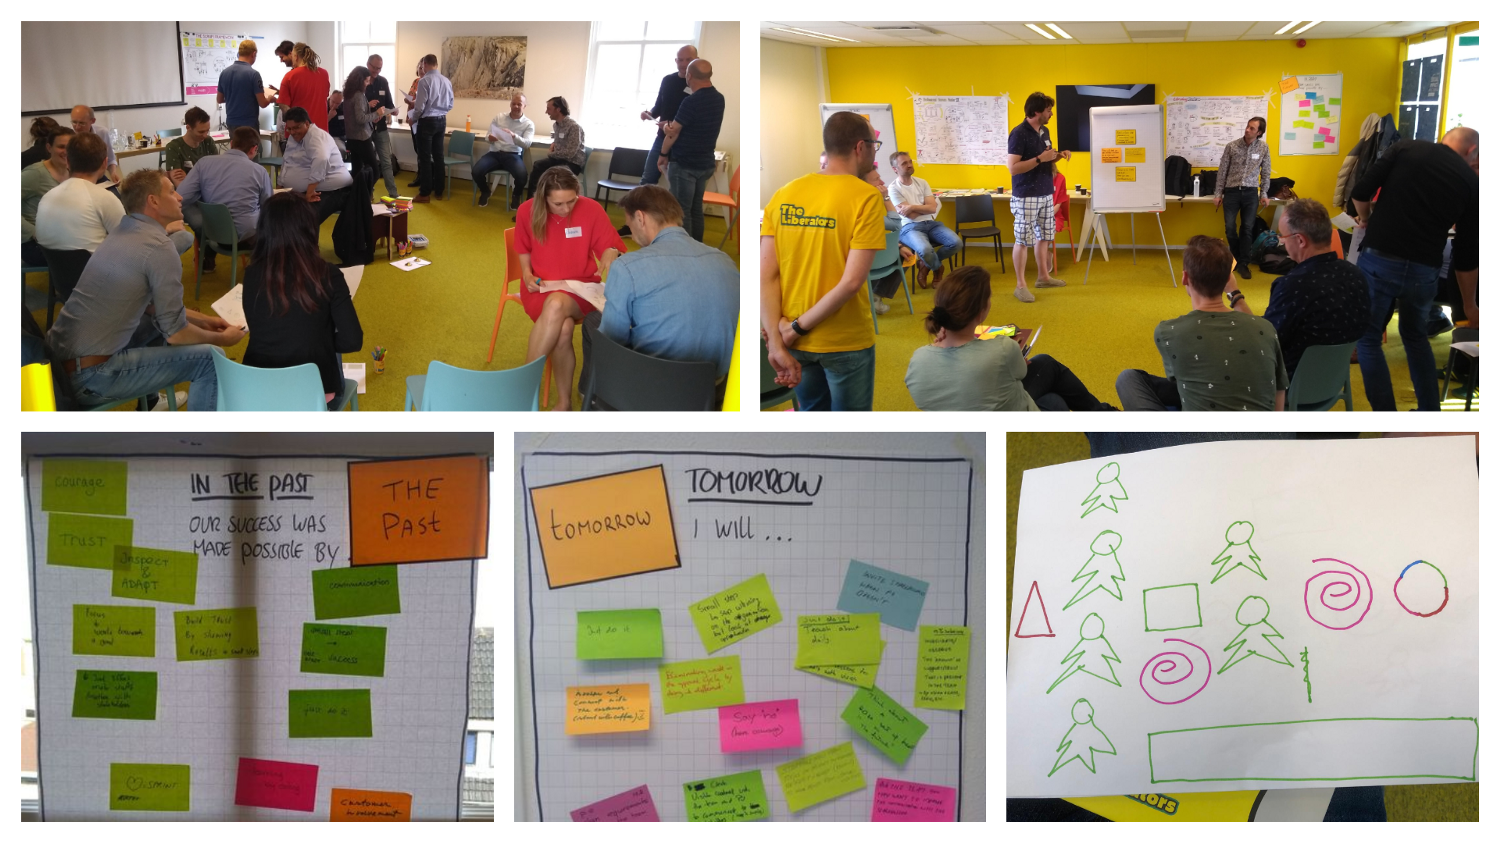 What makes Scrum Masters successful? Insights from a conversation between 30 Scrum Masters